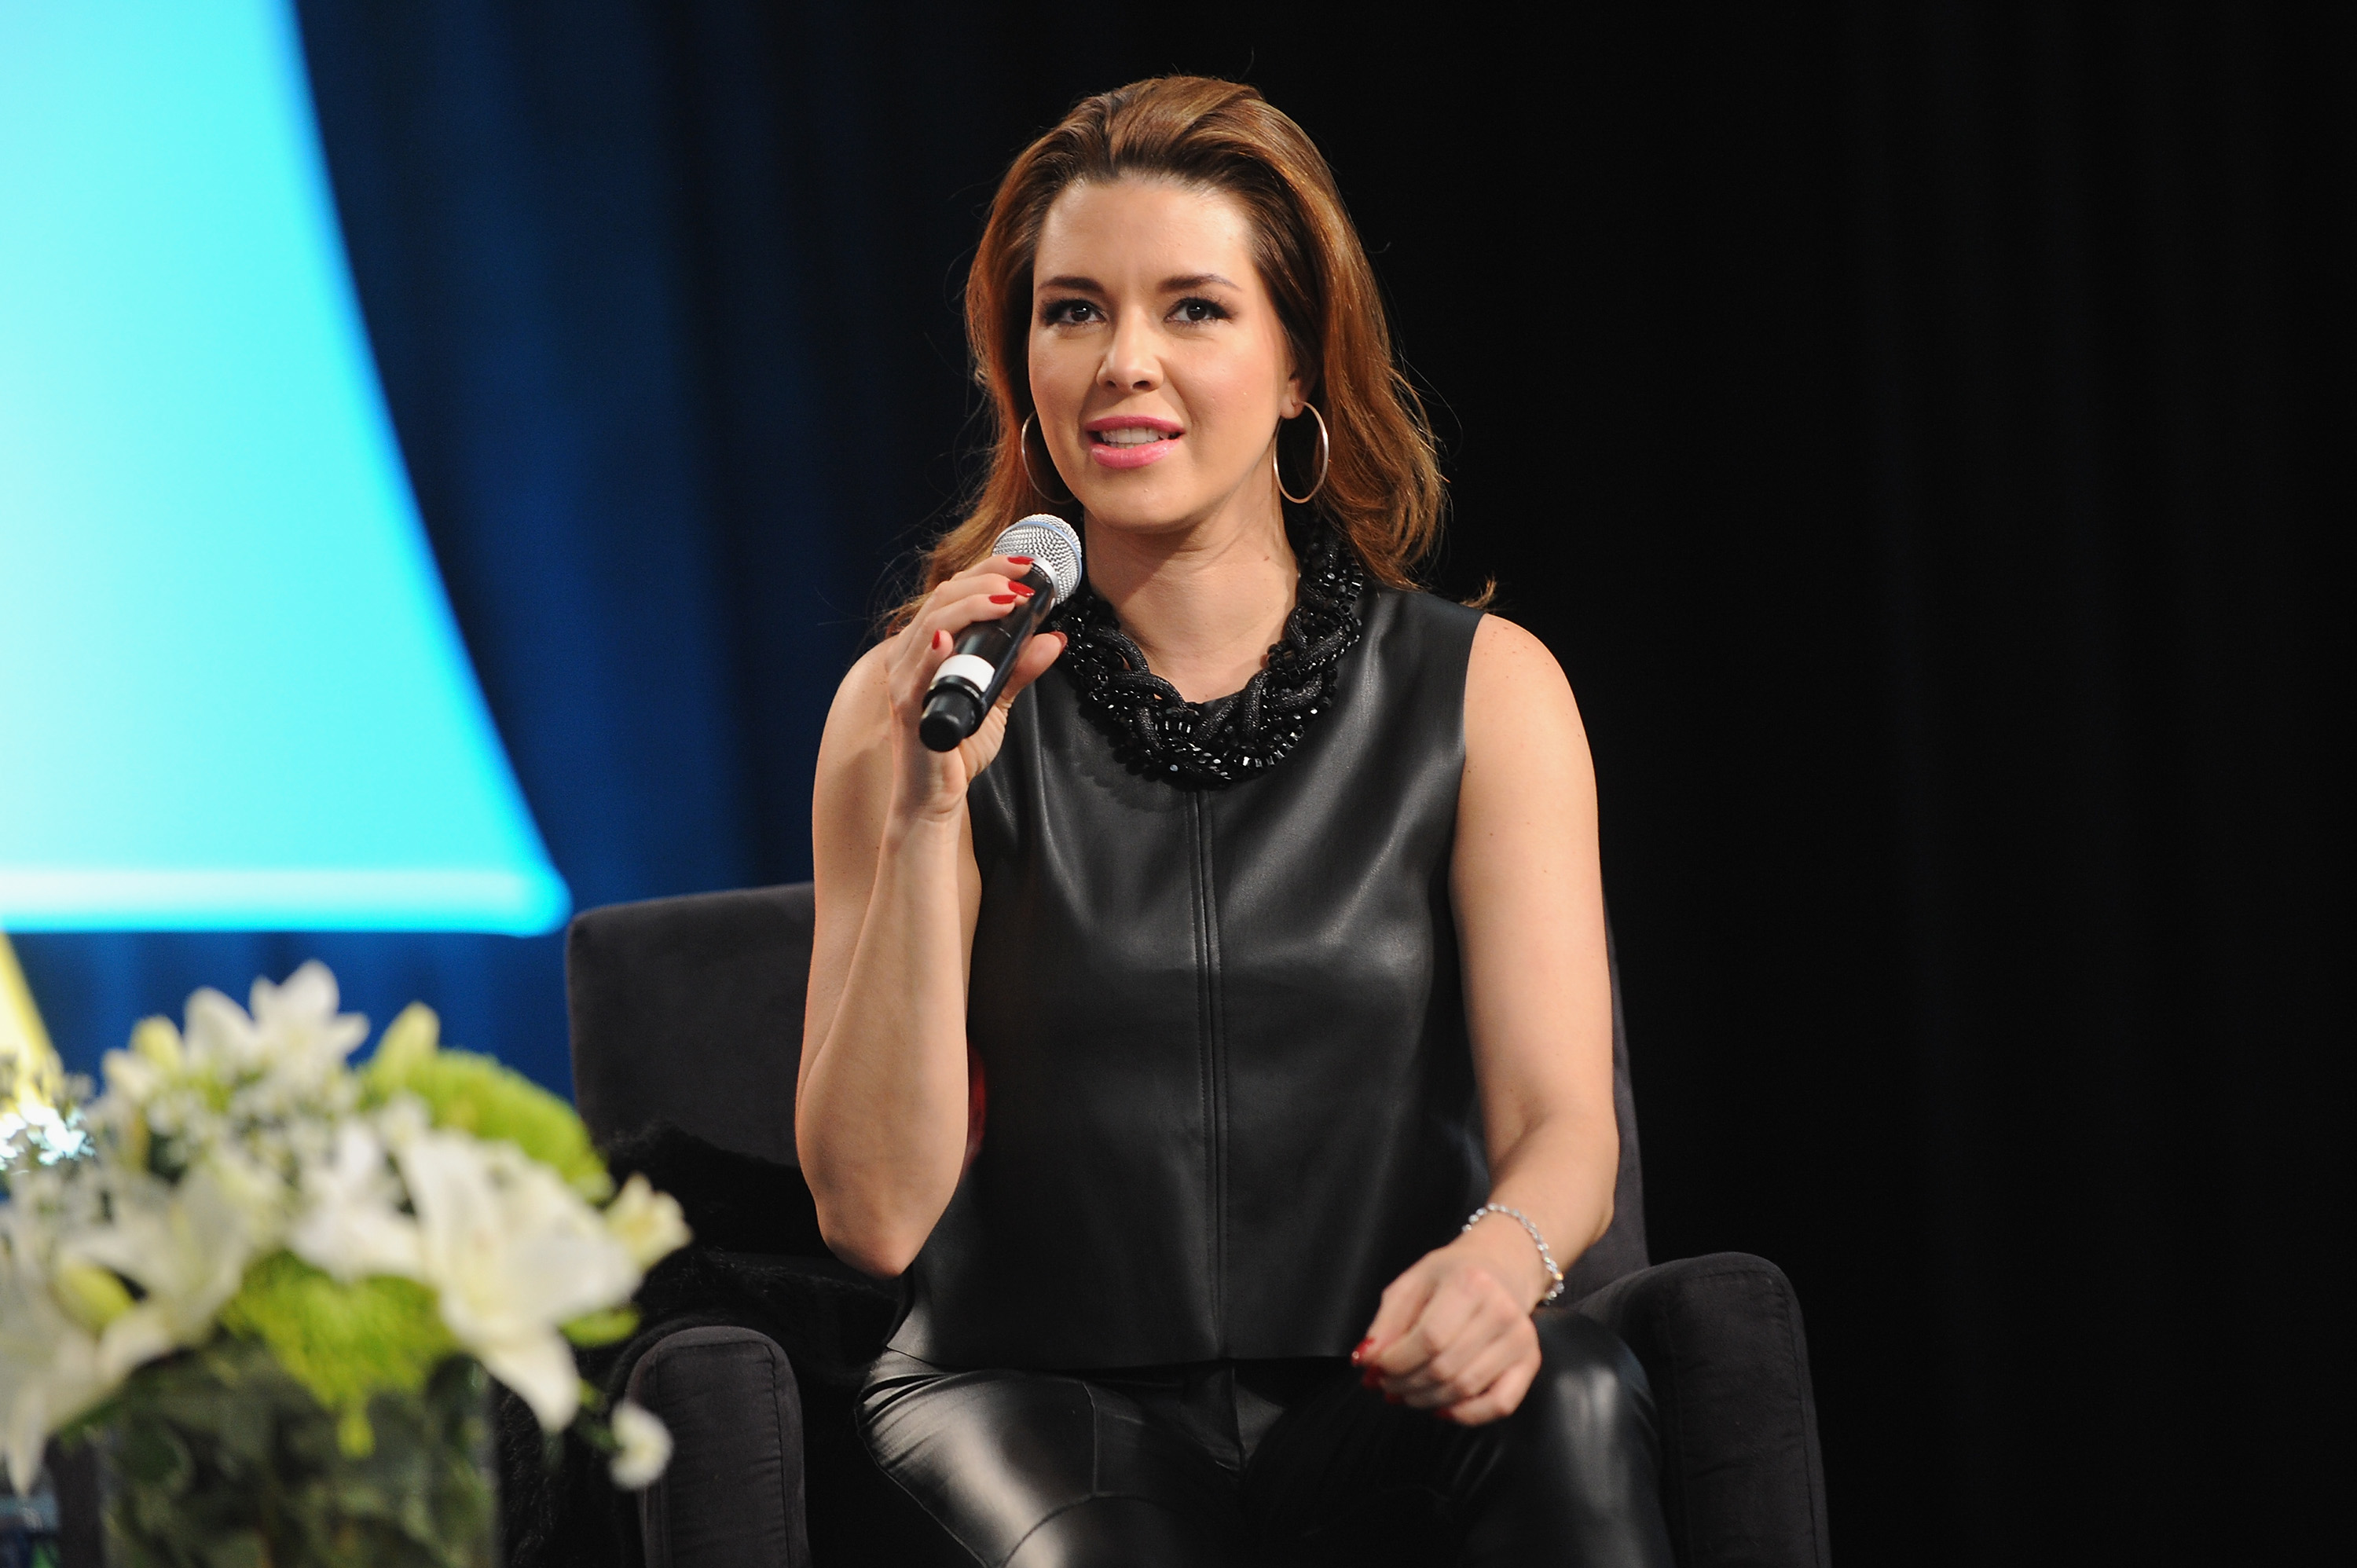 Who is Alicia Machado? 14 Things To Know About Former Miss